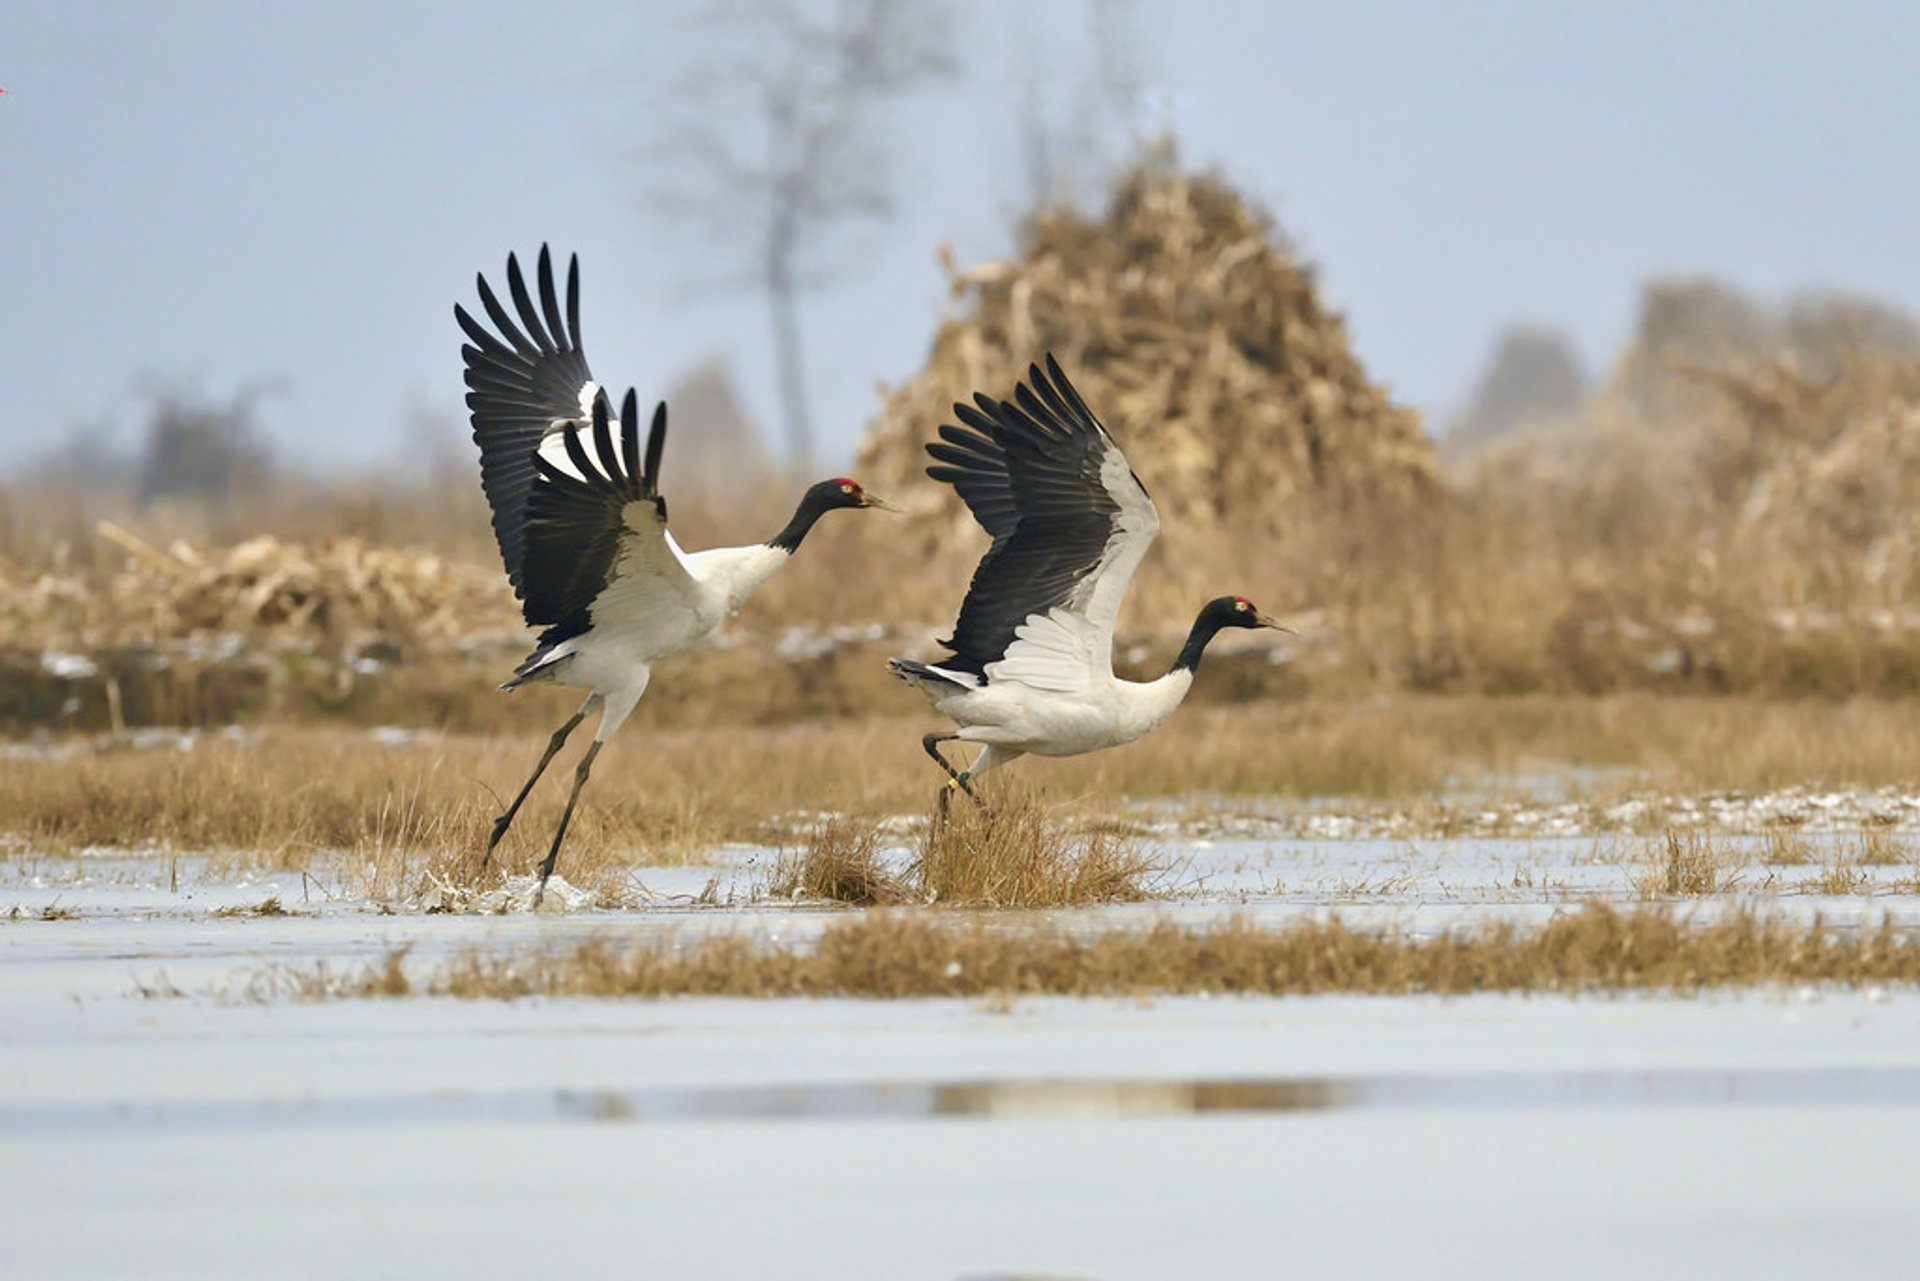 Black-Necked Cranes in Tibet 2020 - Best Time